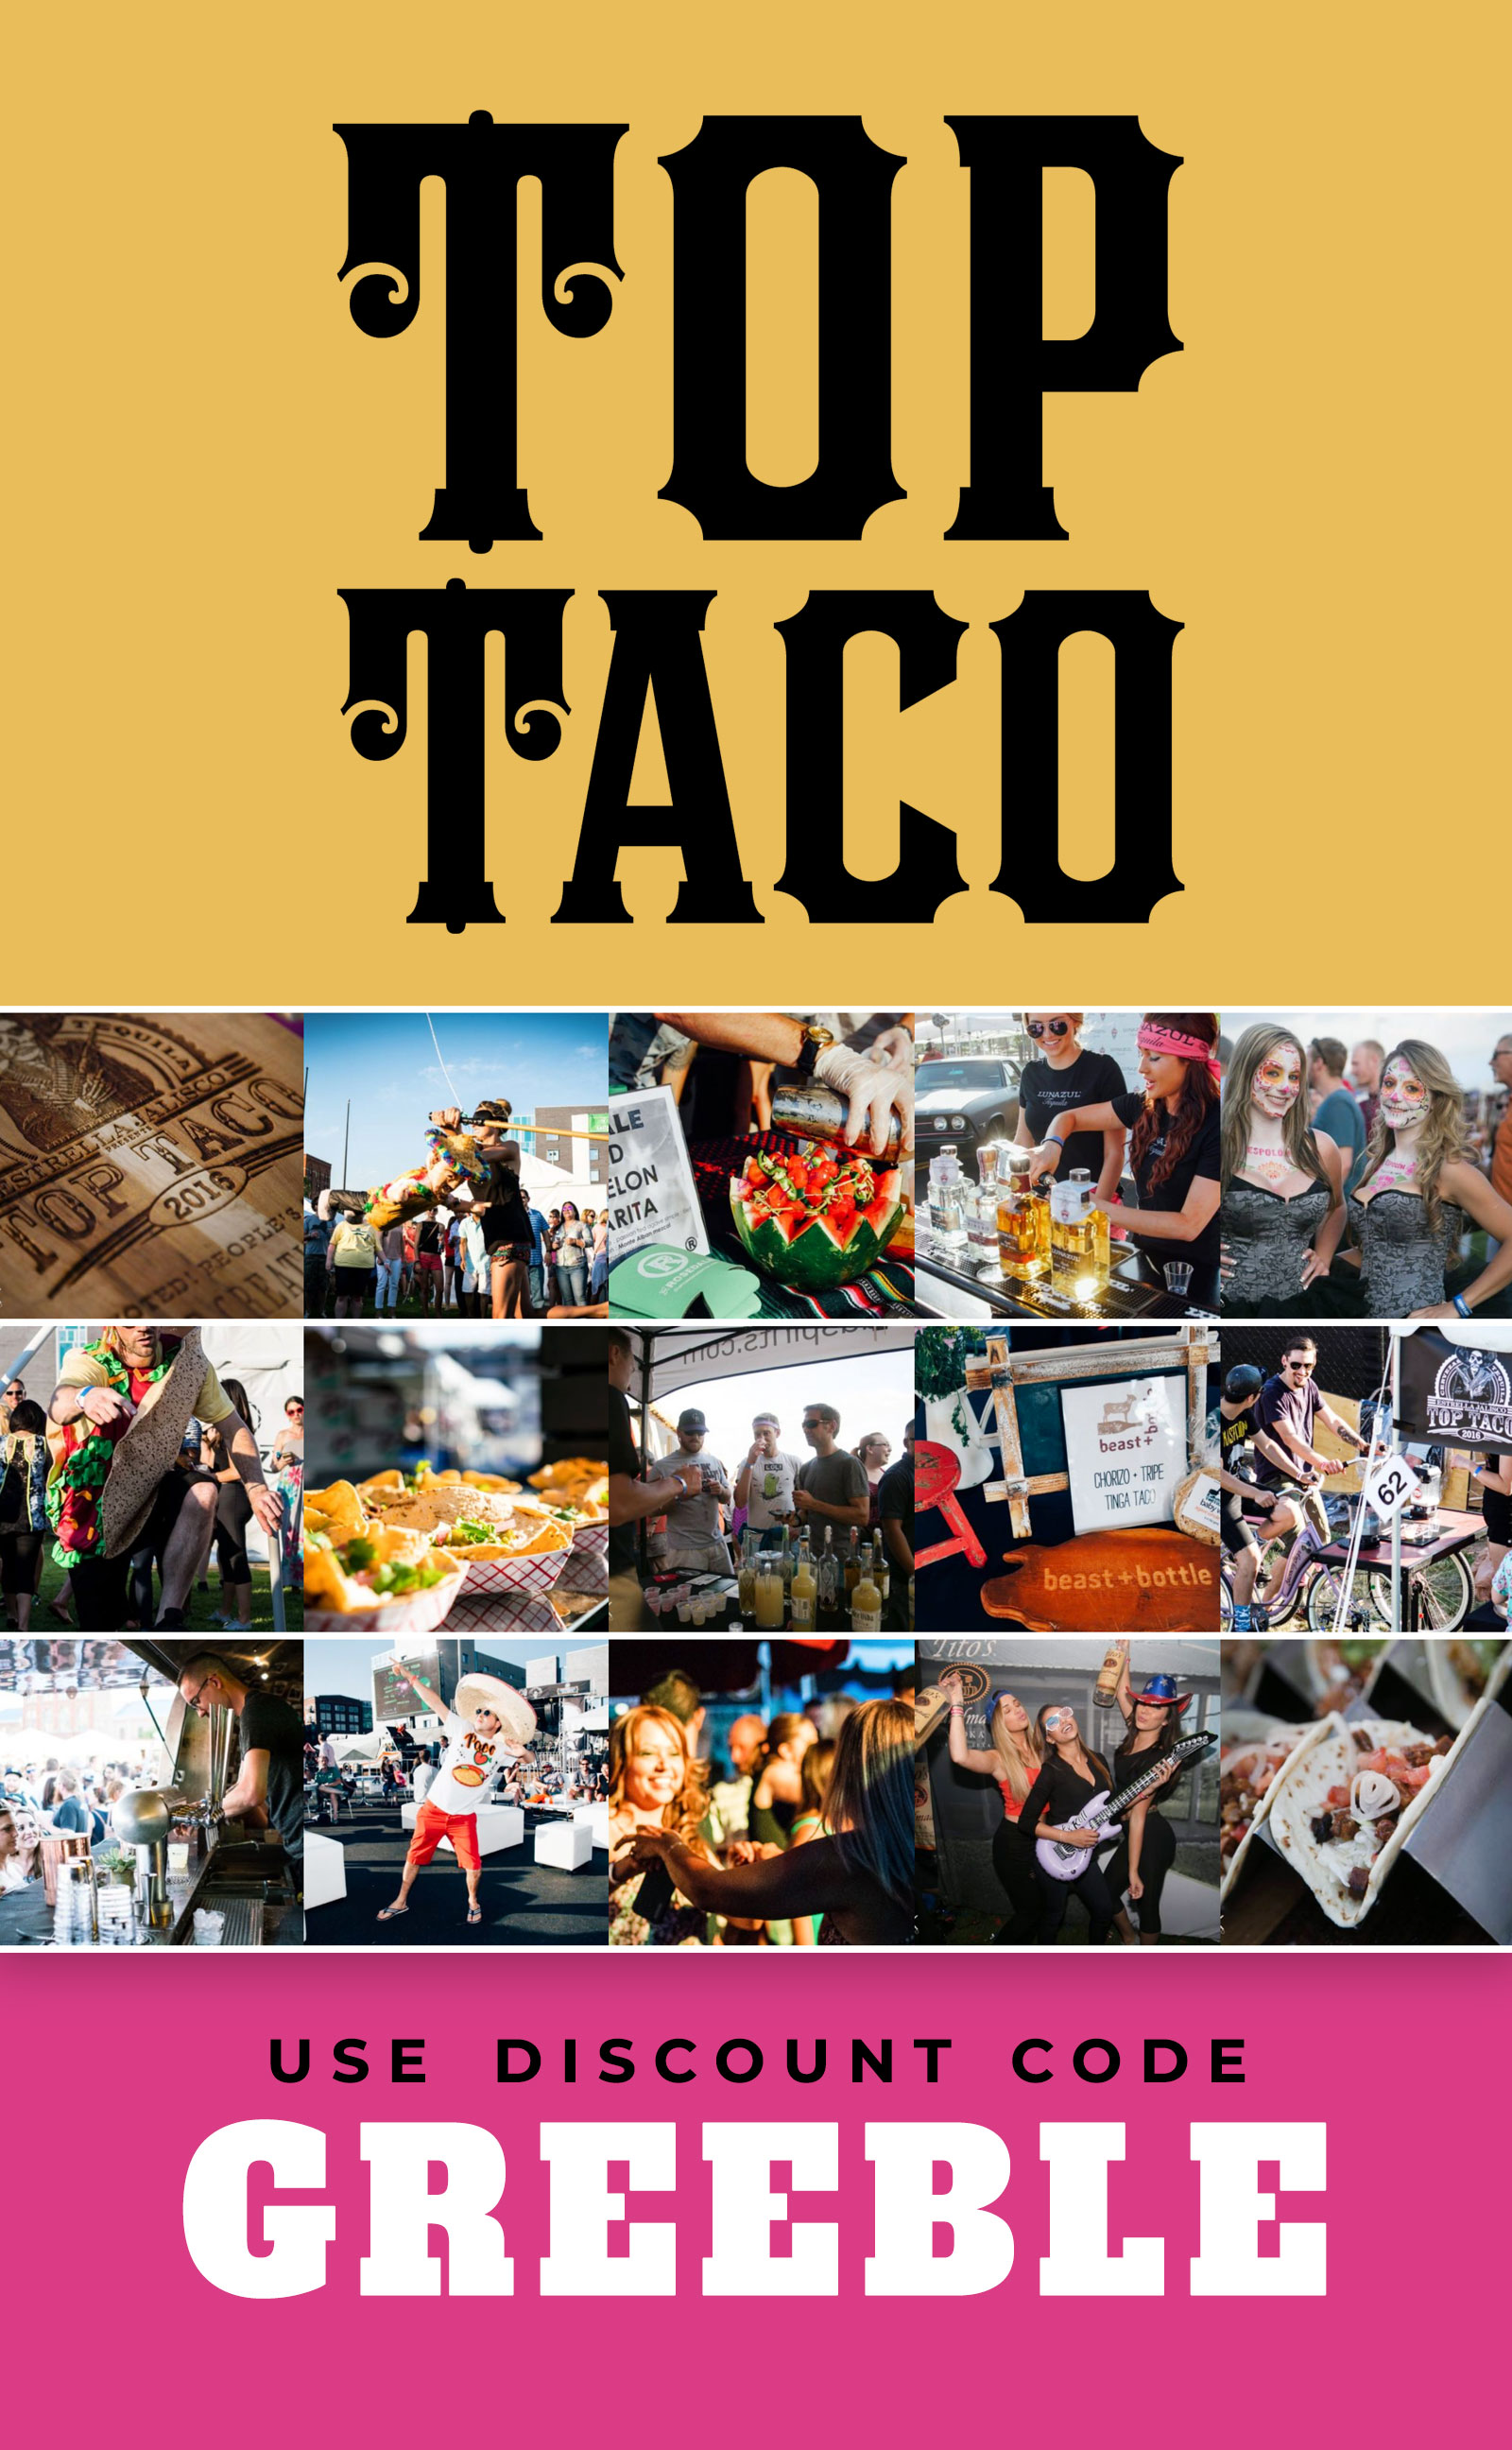 Top Taco Denver - Discount Code GREEBLE - Food and Drink Tasting Event